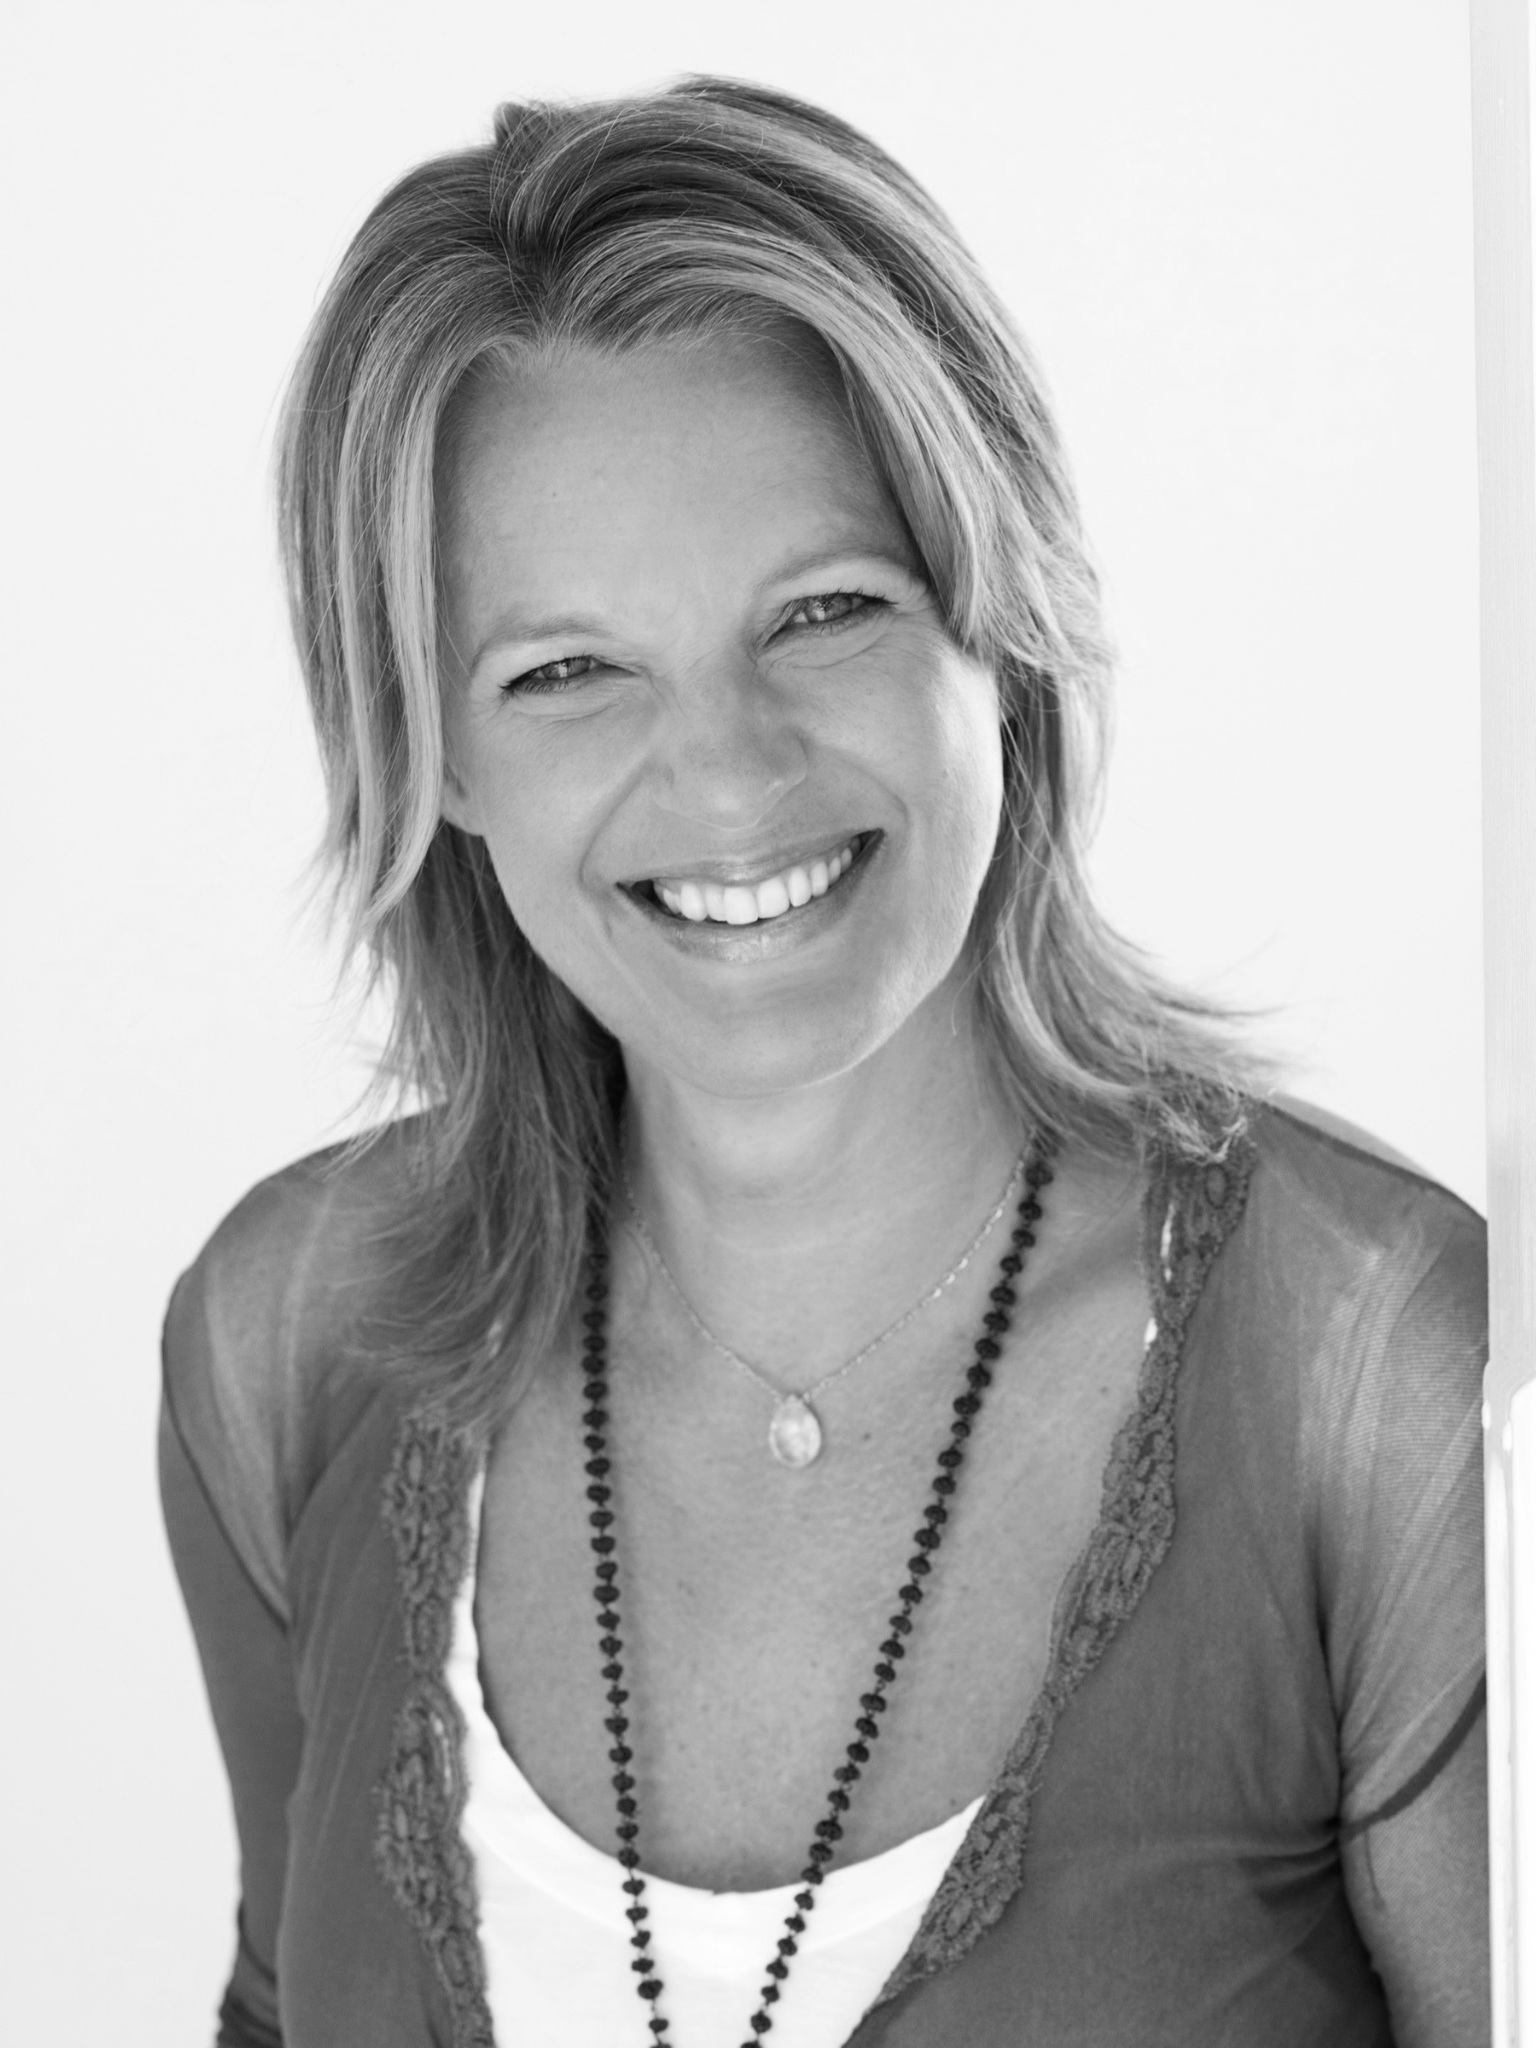 elizabeth-irvine-truewellbeing-author-yoga-teacher-integrative-health-expert-educator-speaker.jpg